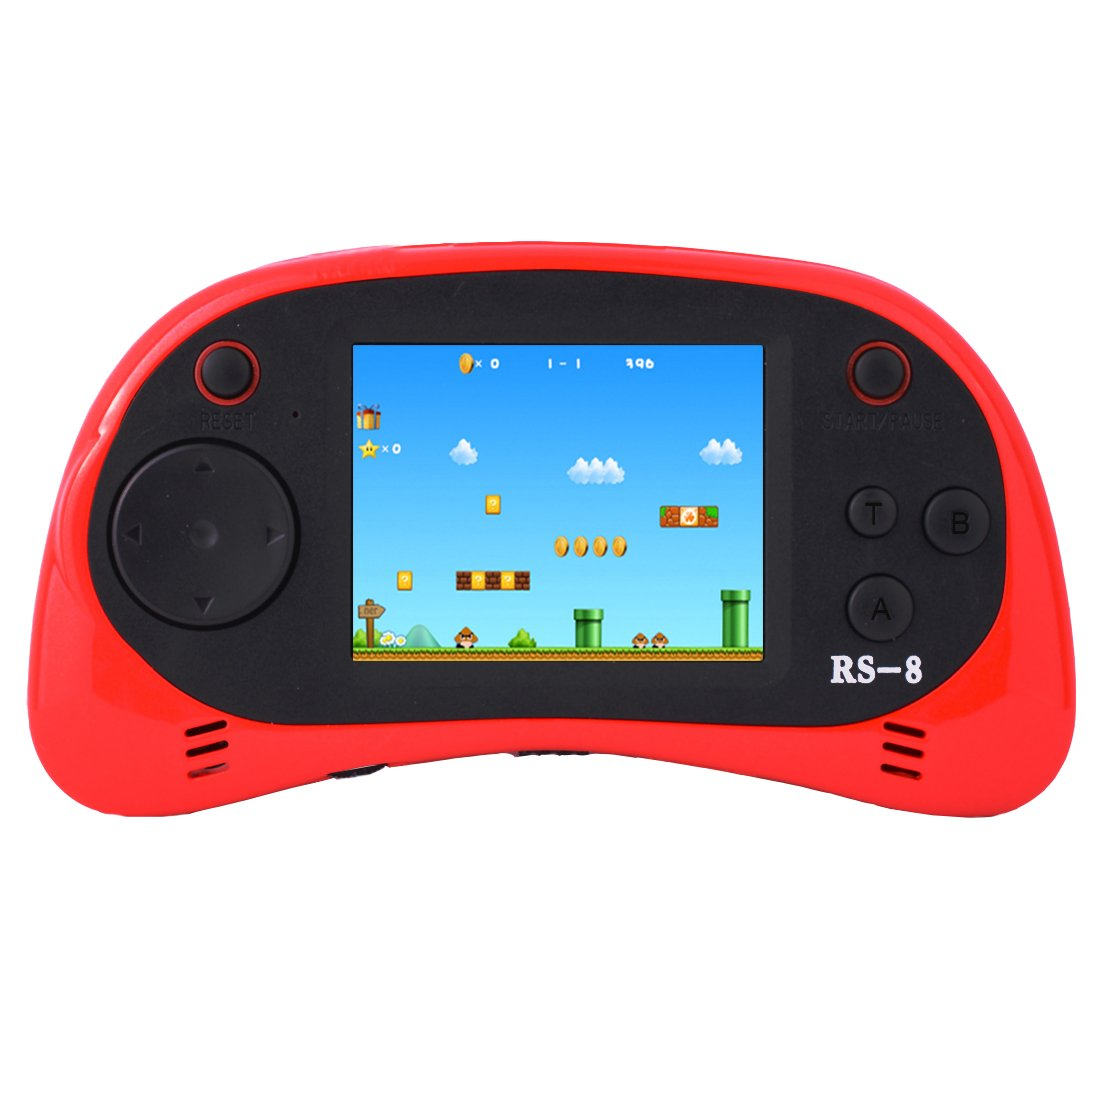 Retro Handheld Game Console & TV Game Controller Built-in 260 Classic Old Style Video Games with 2.5'' Color LCD Screen Portable Arcade Gaming System Birthday Gift for Children (Red)